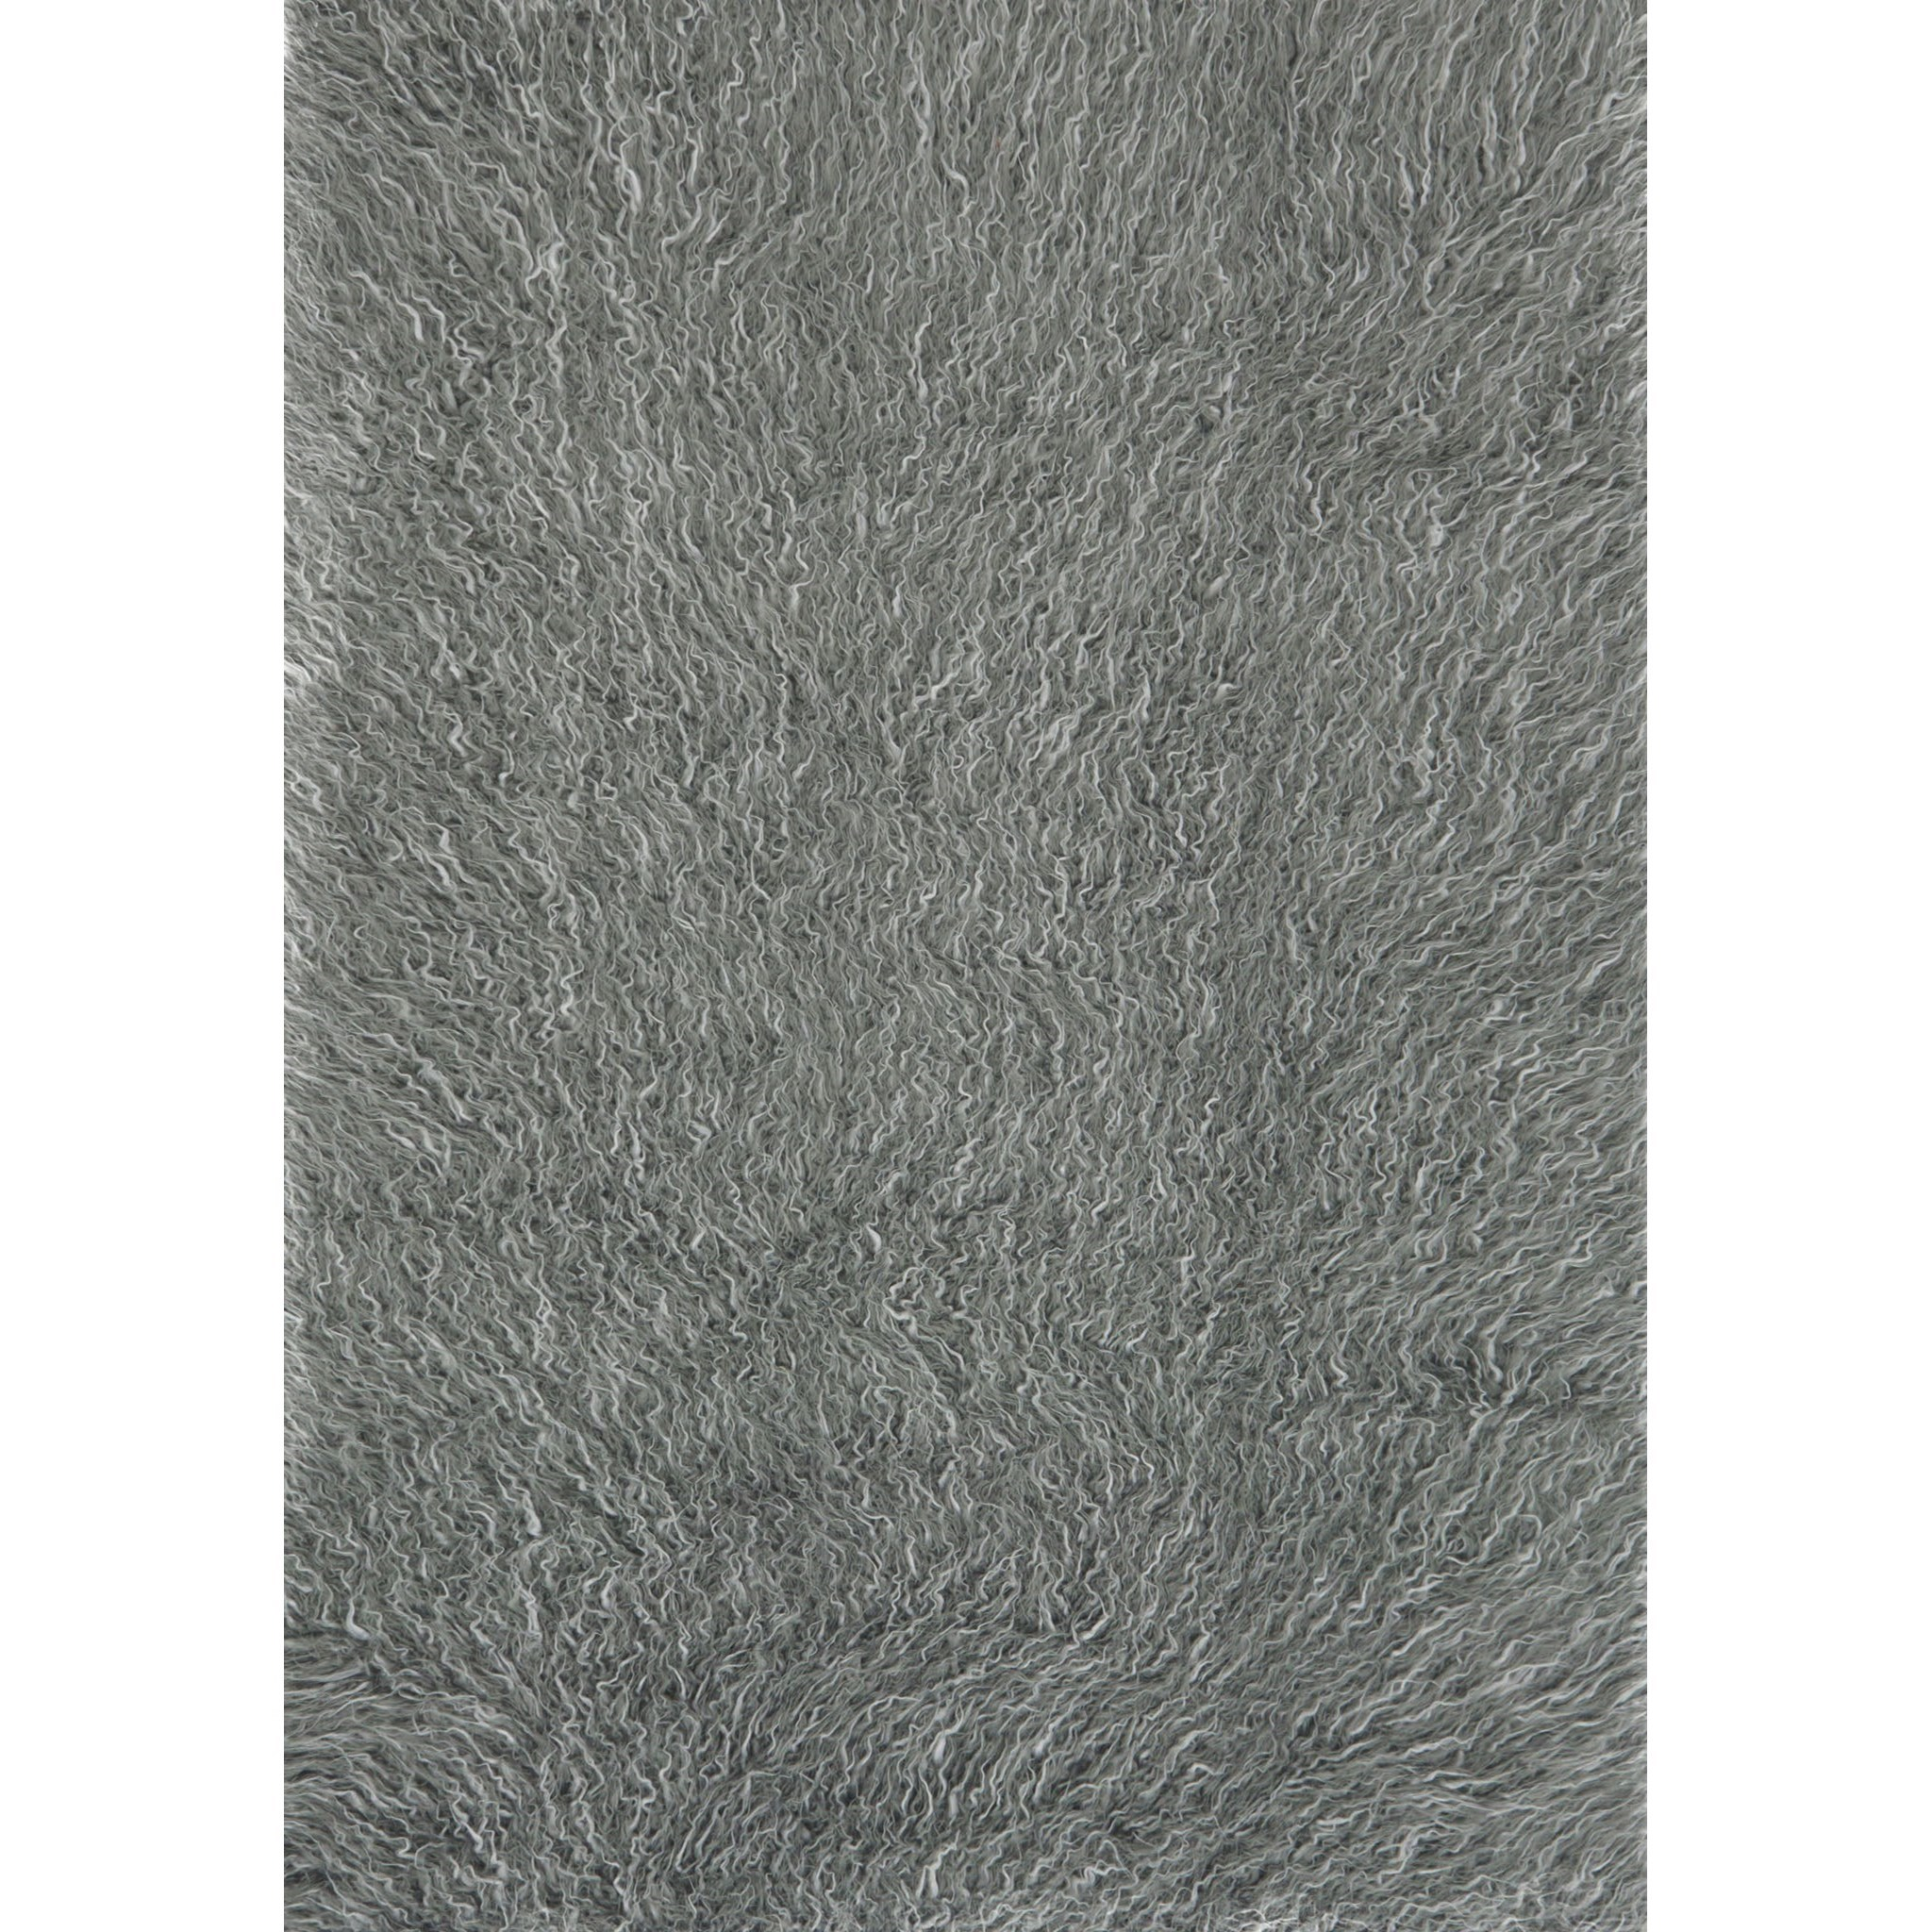 Petra 10' X 13' Area Rug by Loloi Rugs at Virginia Furniture Market